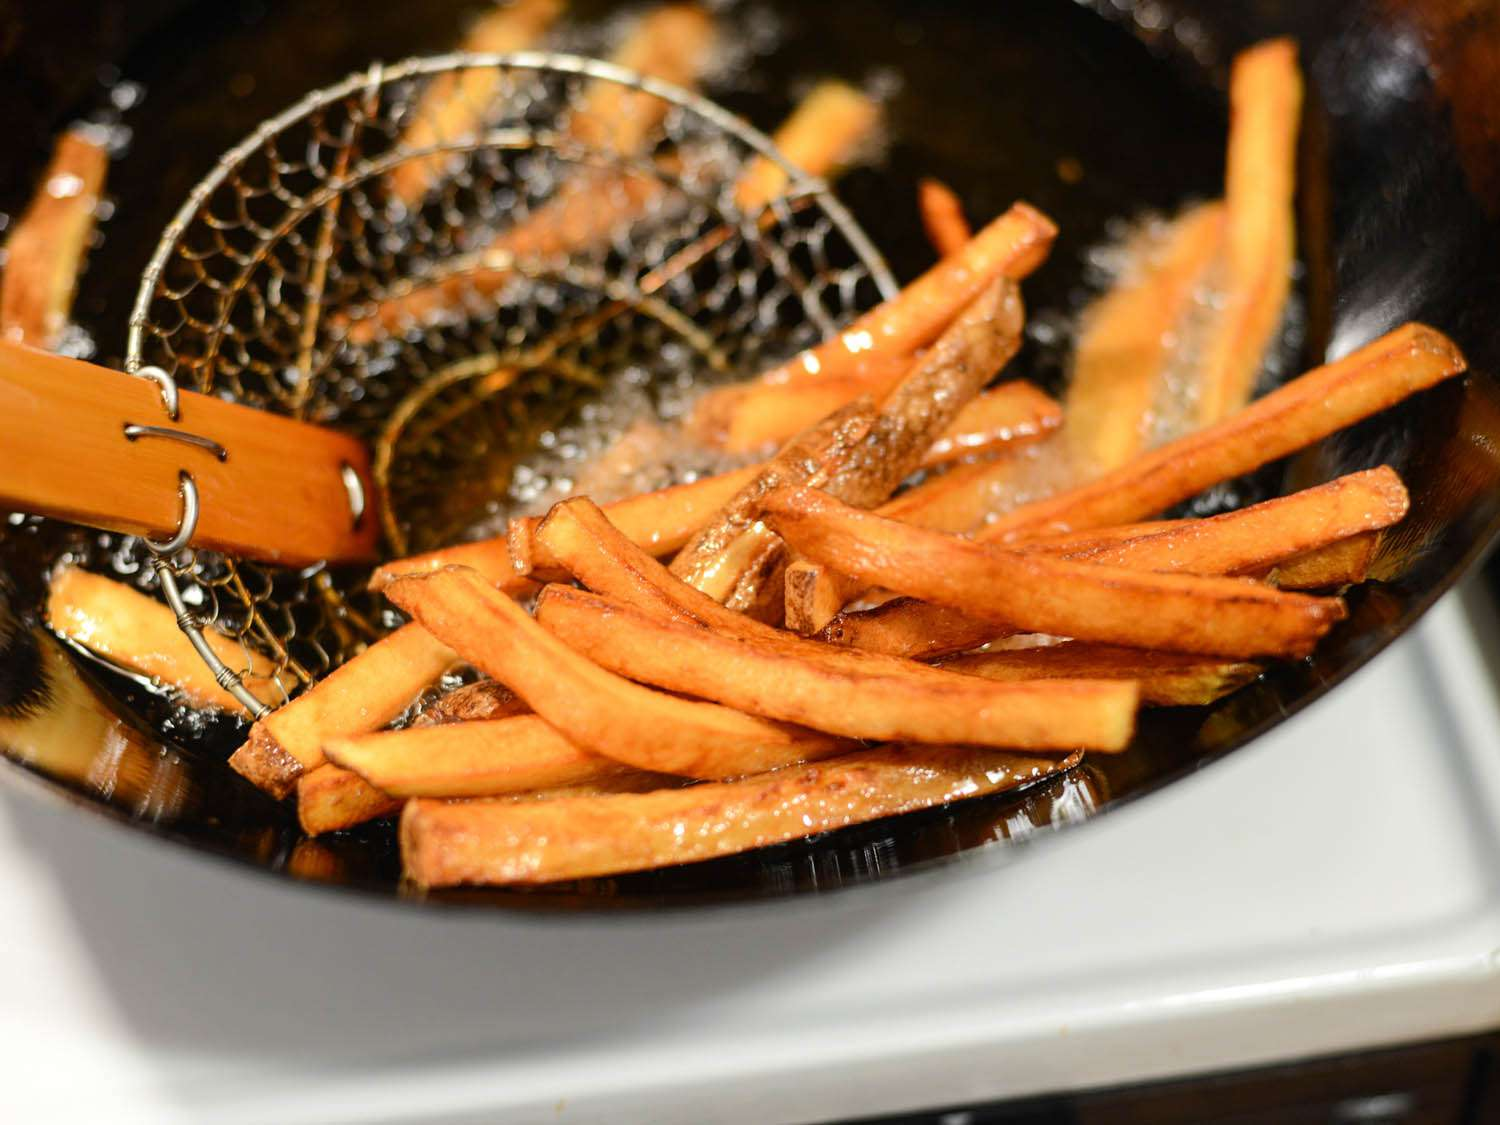 fries made from scratch